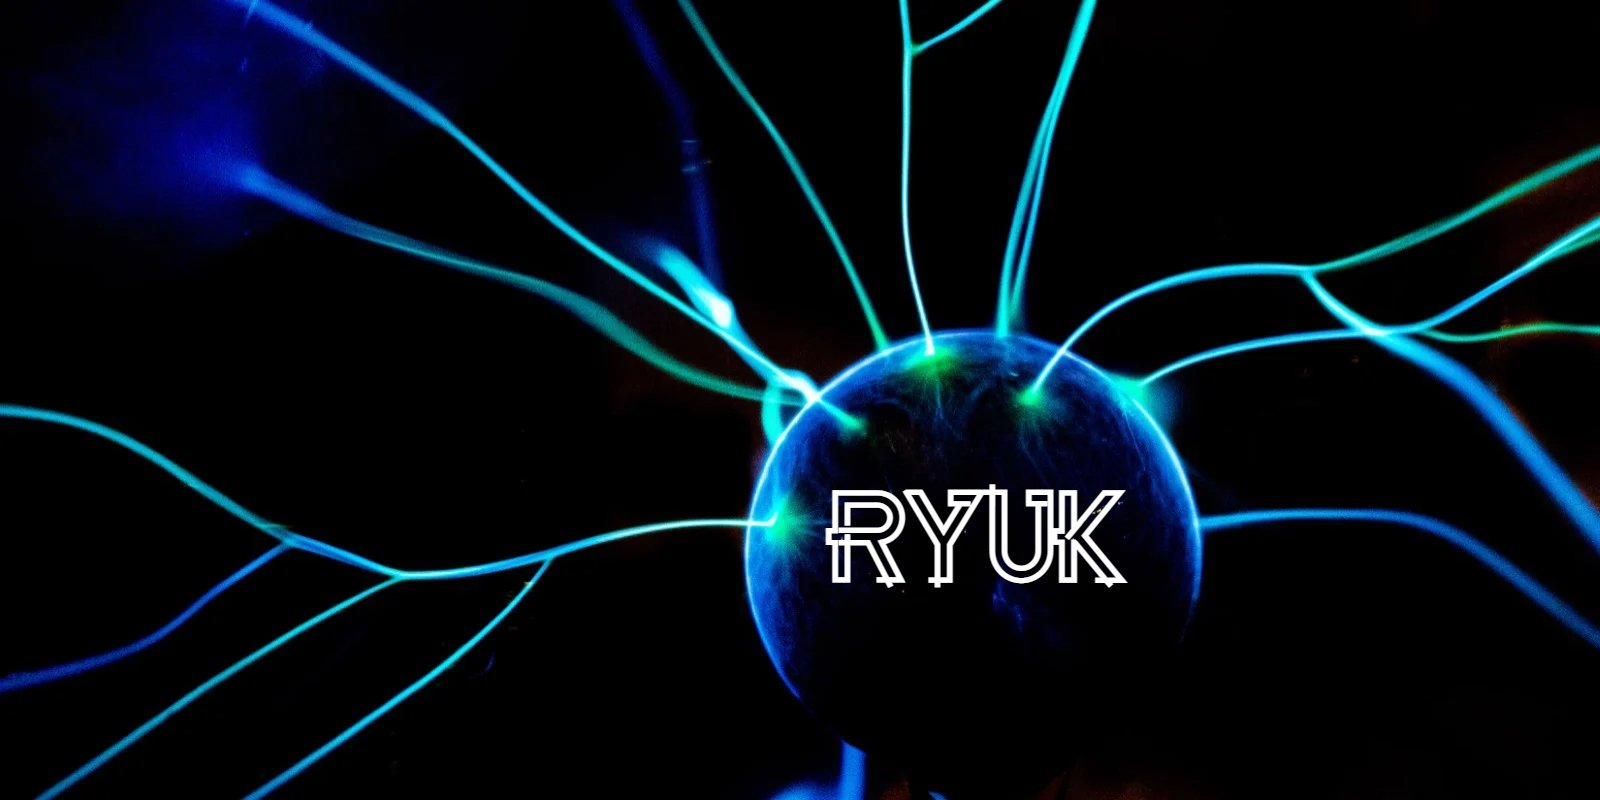 Ryuk ransomware now self-spreads to other Windows LAN devices